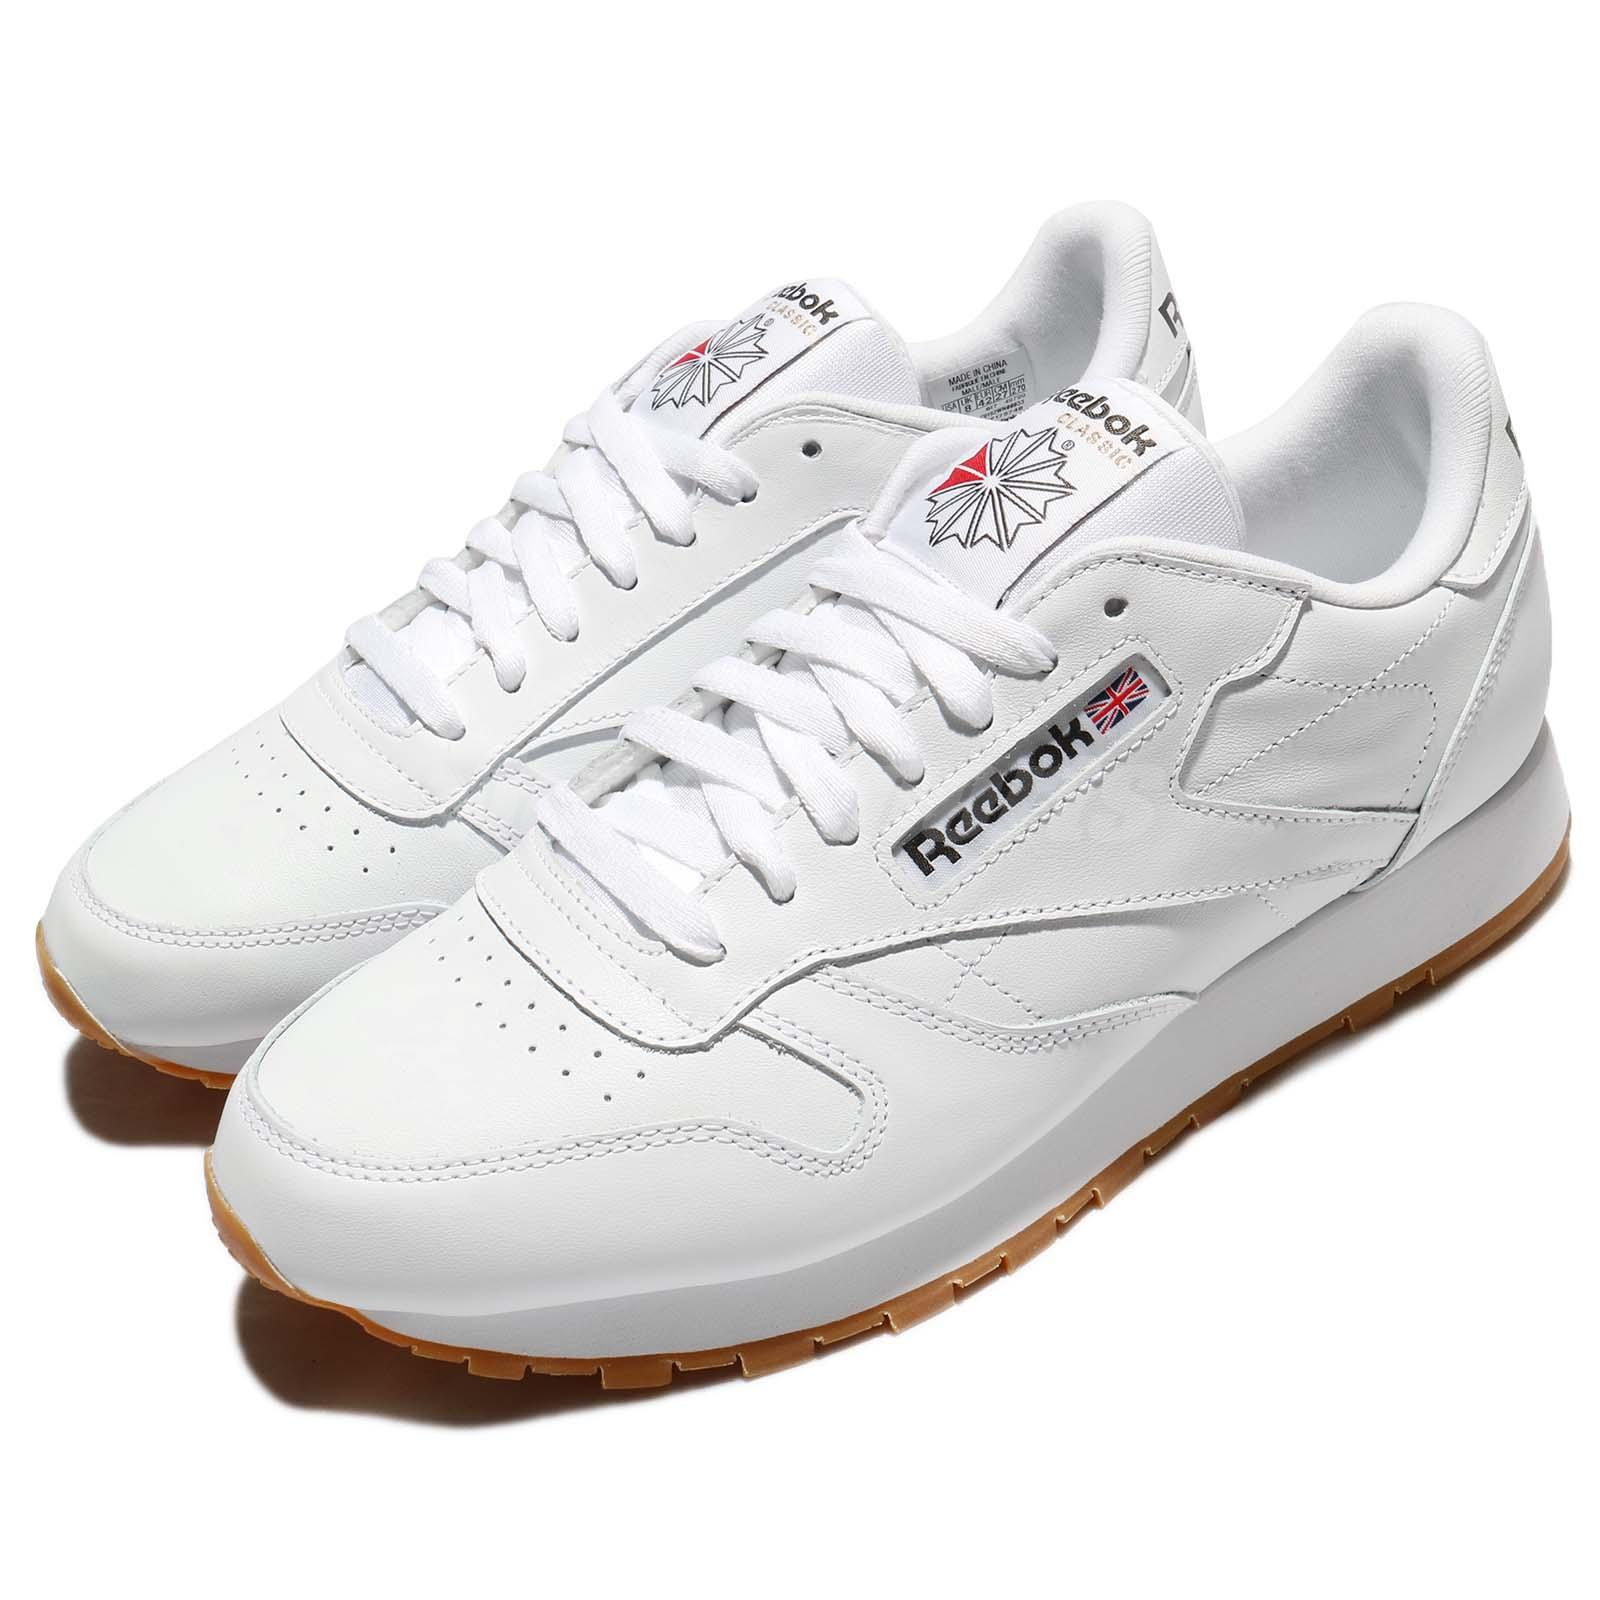 Details about Reebok CL LTHR Leather White Gum Retro Men Running Shoes  Sneakers 49799 f872500e5